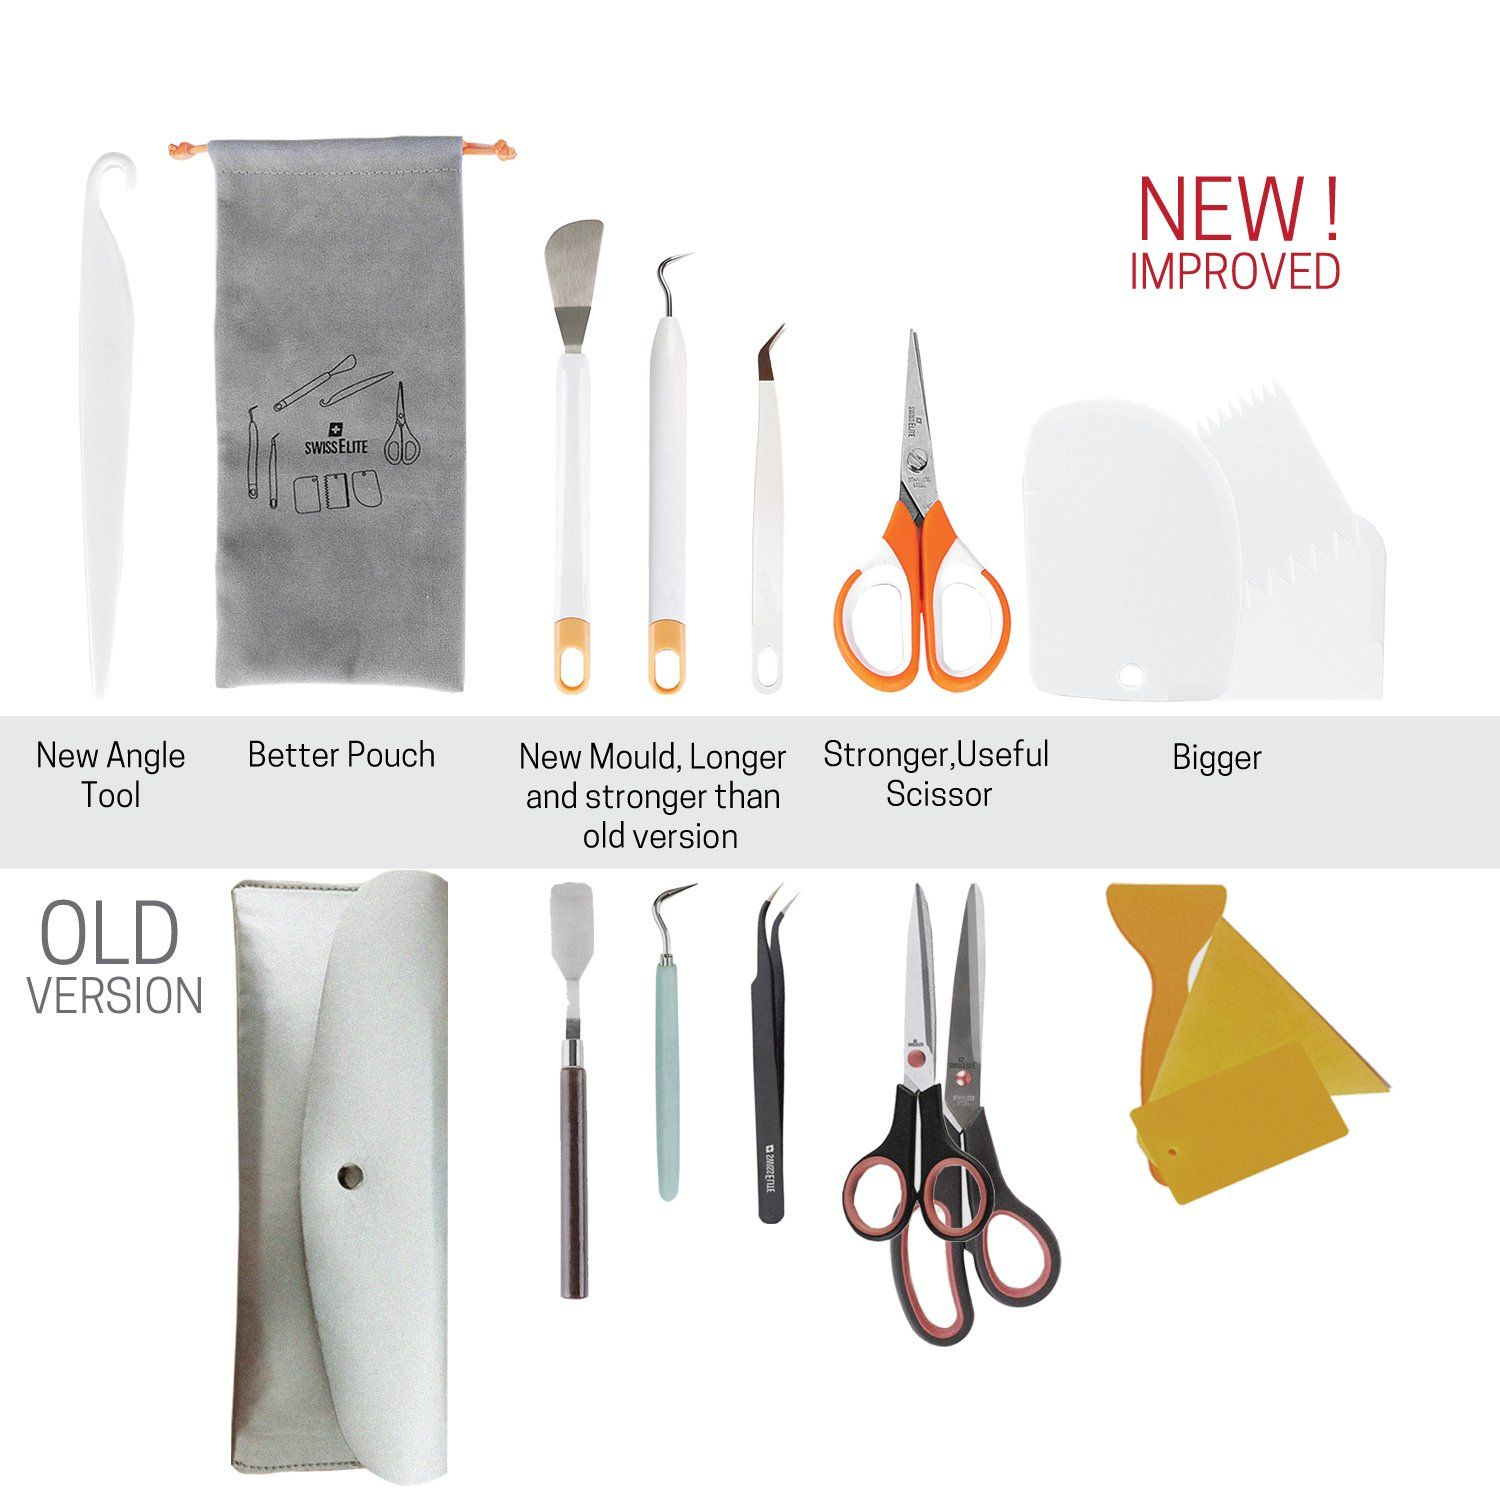 Craft Weeding Tools with Flannelette Bag for Vinyl by Craft Weeding Tools Set